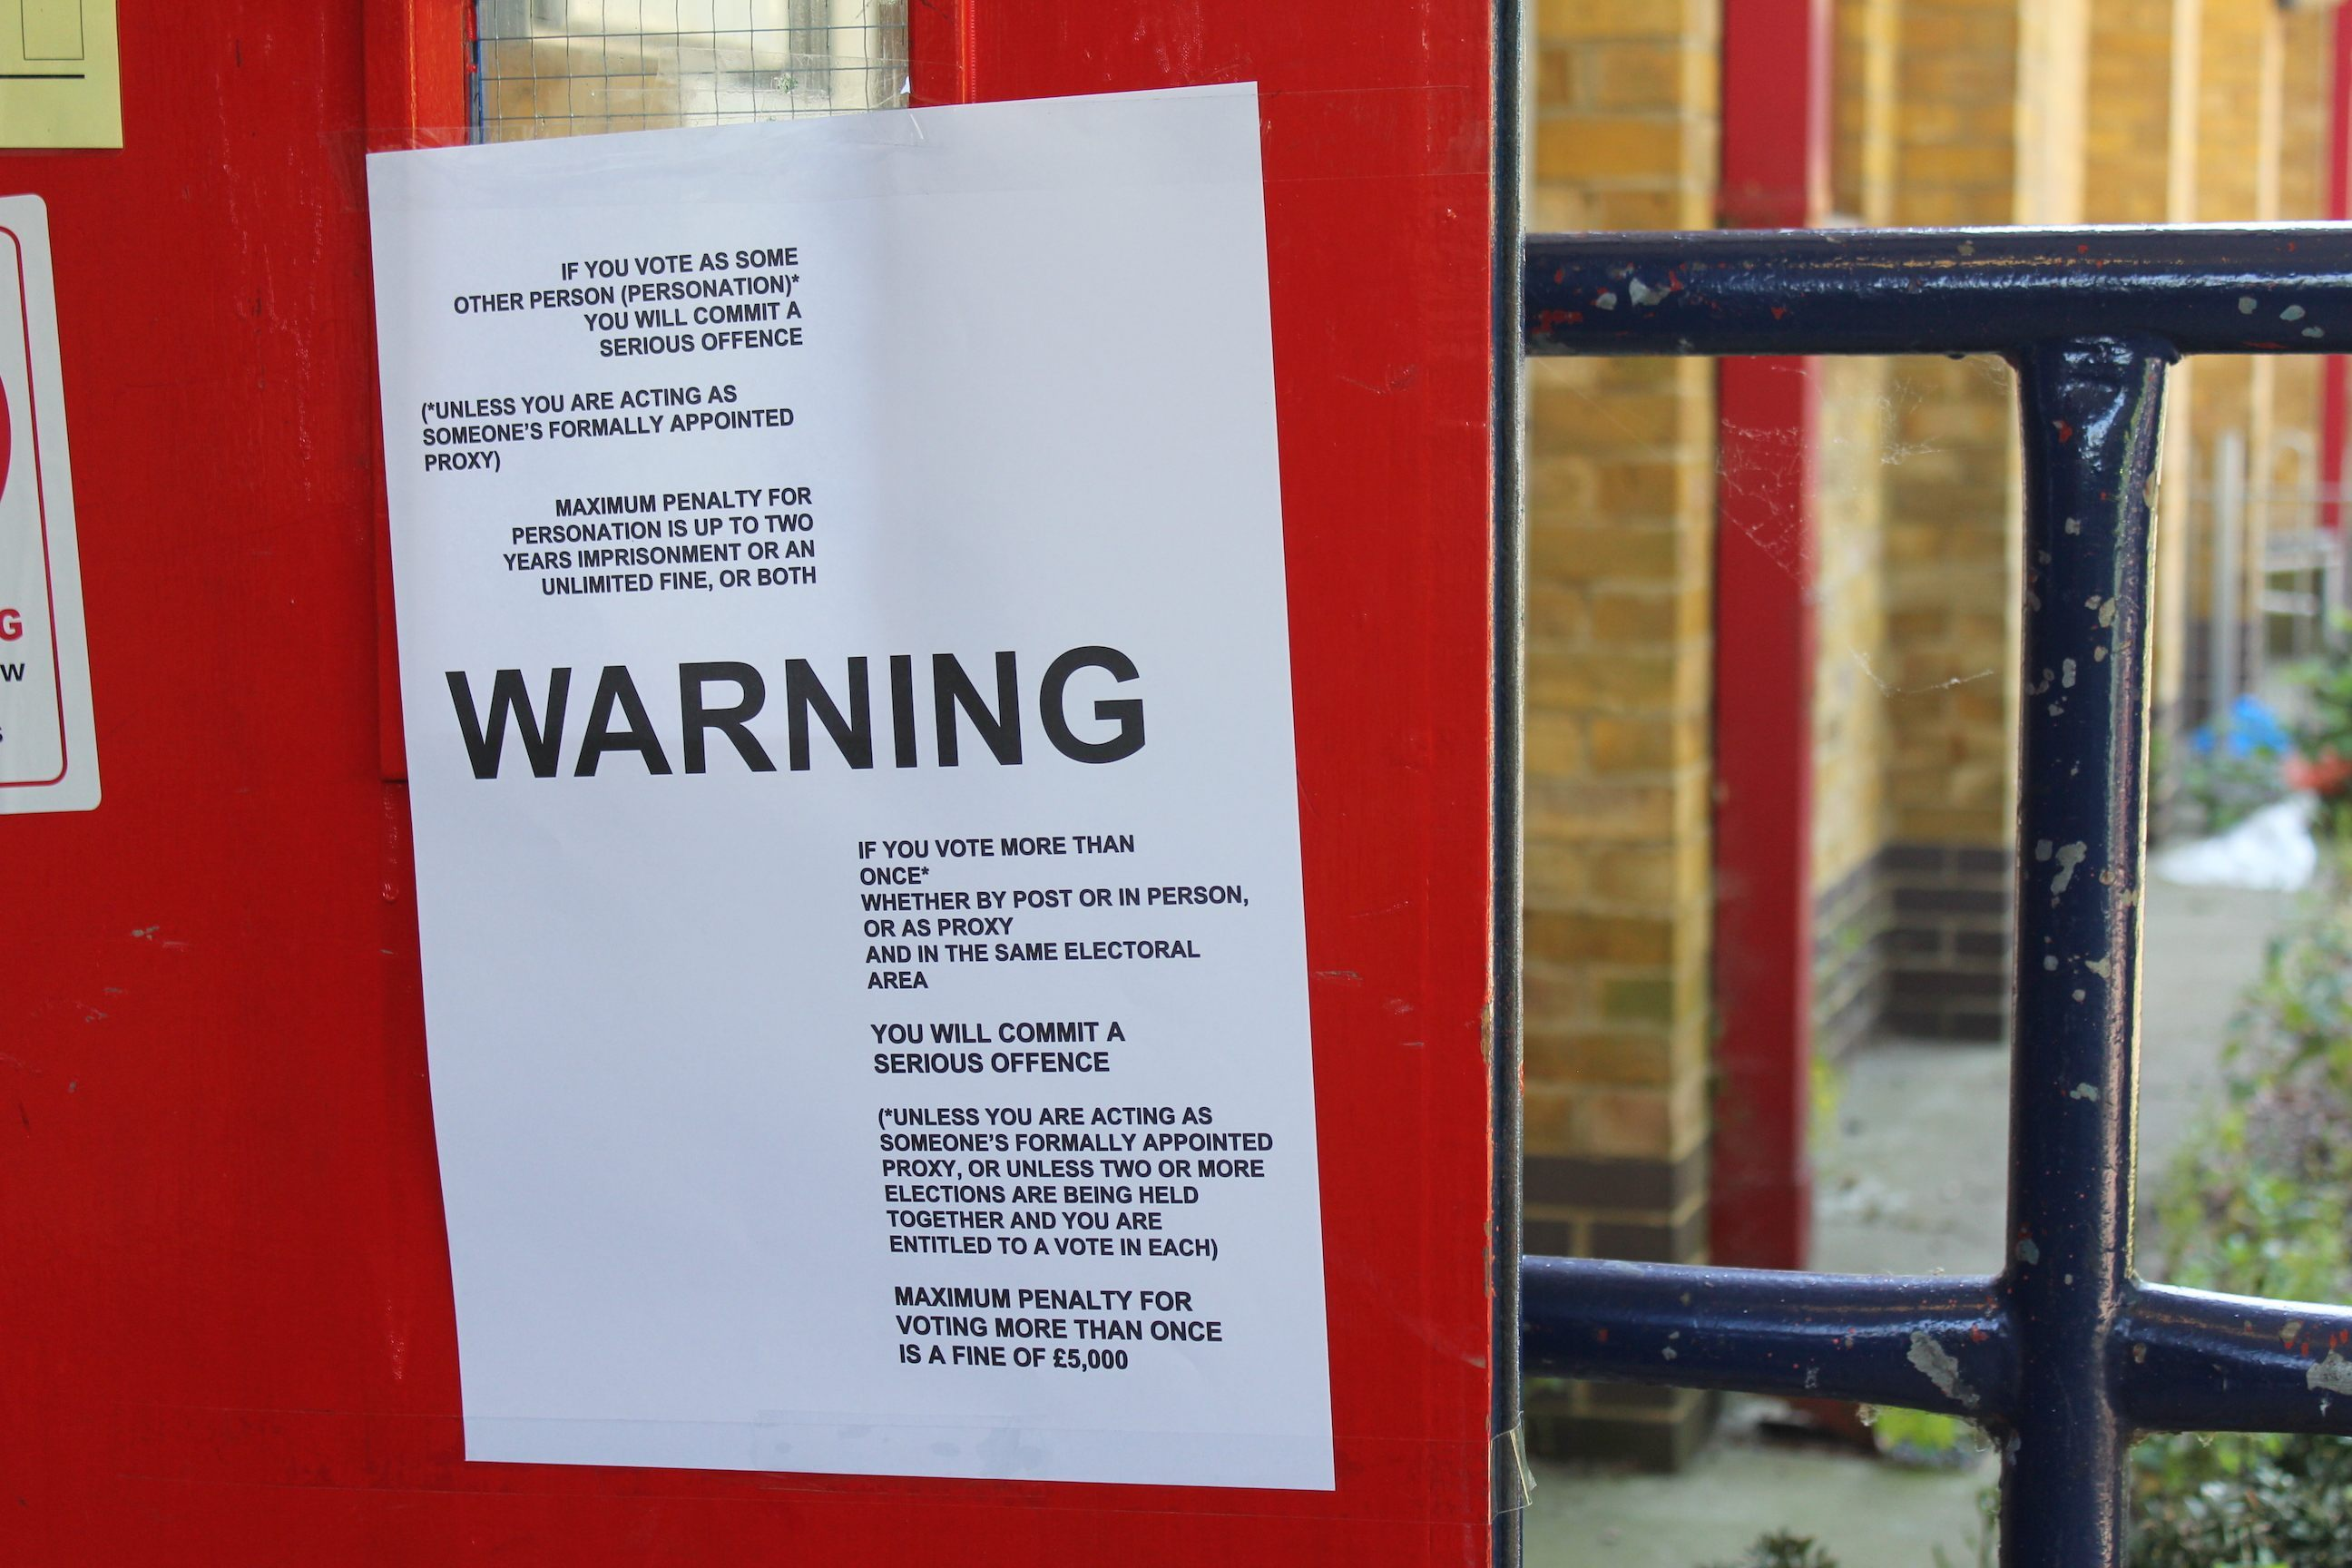 An unprecedented 'warning' sign at a polling station